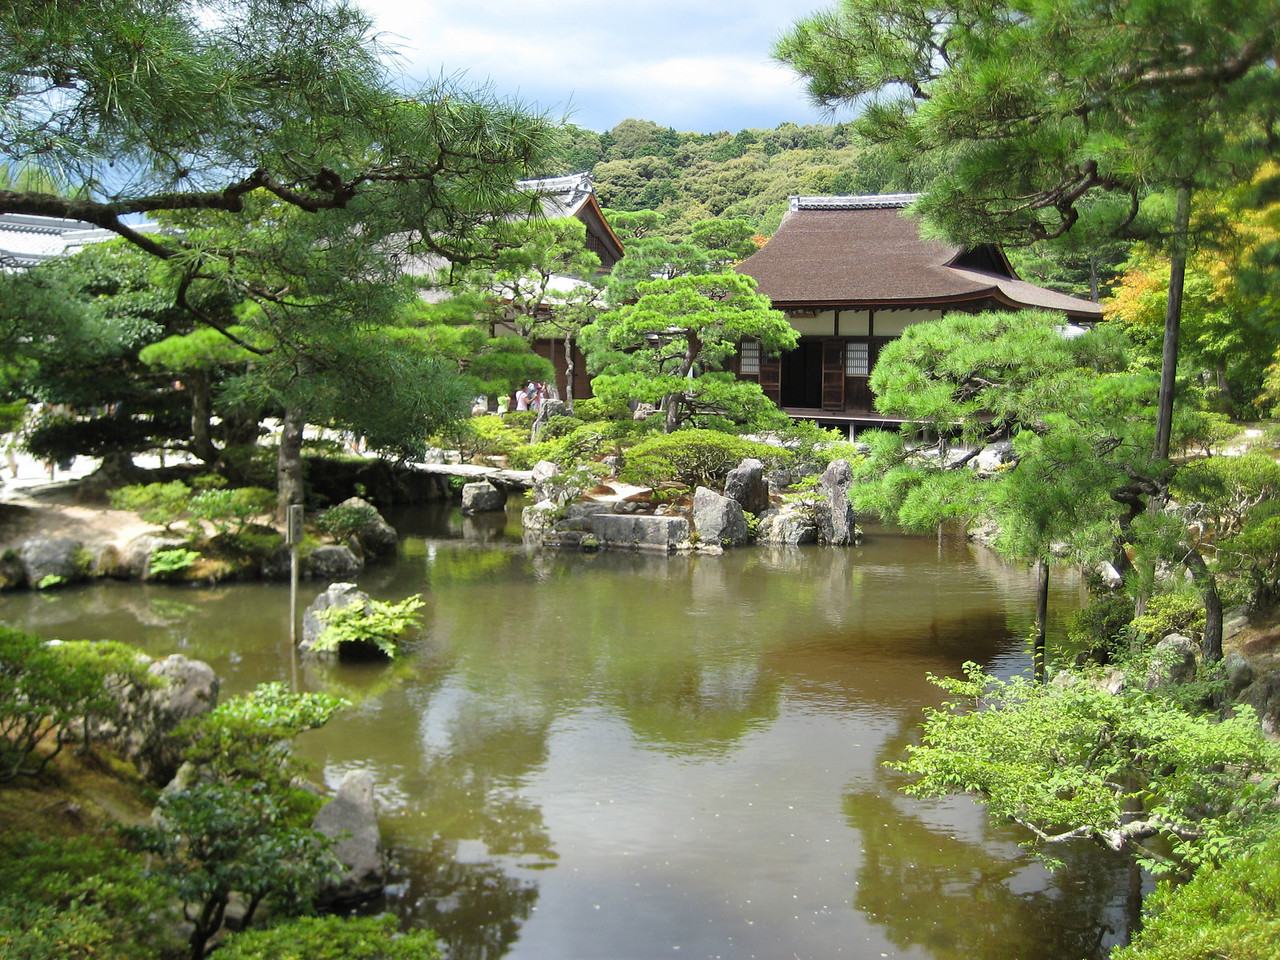 A view over the Brocade Mirror Pond (Kinkyo-chi)